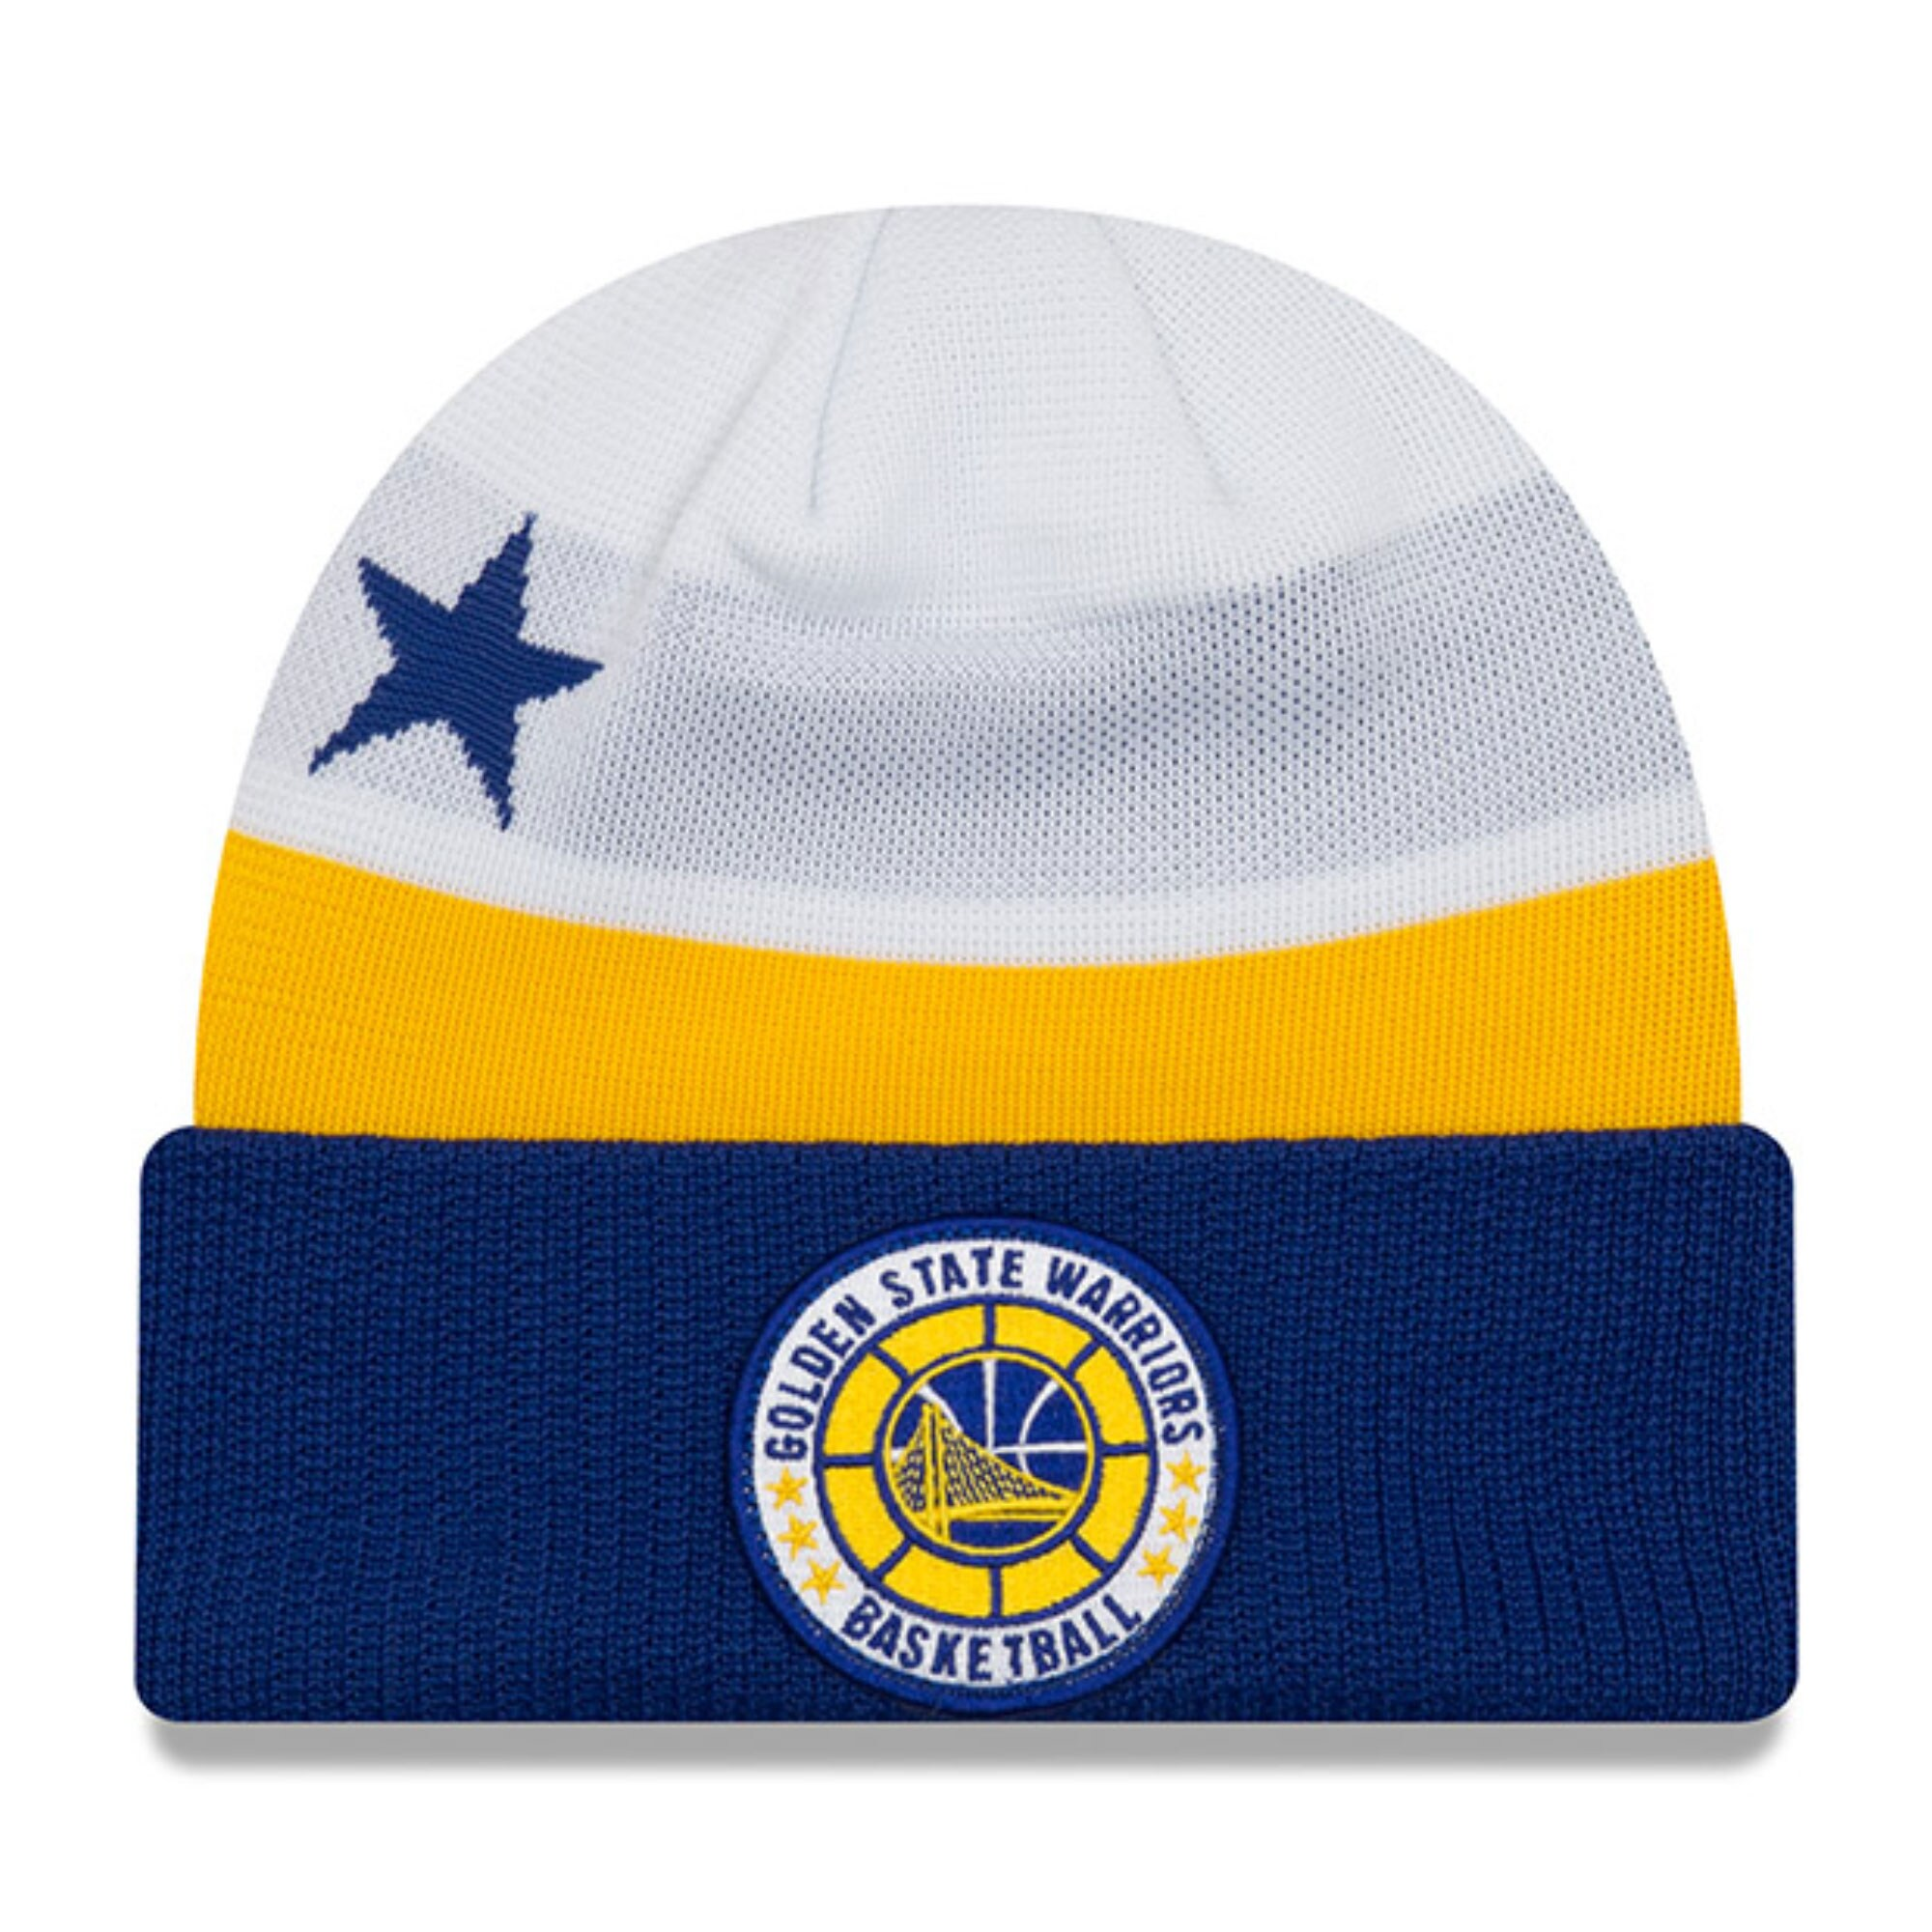 Golden State Warriors New Era 2018 Tip Off Series Cuffed Knit Hat - White